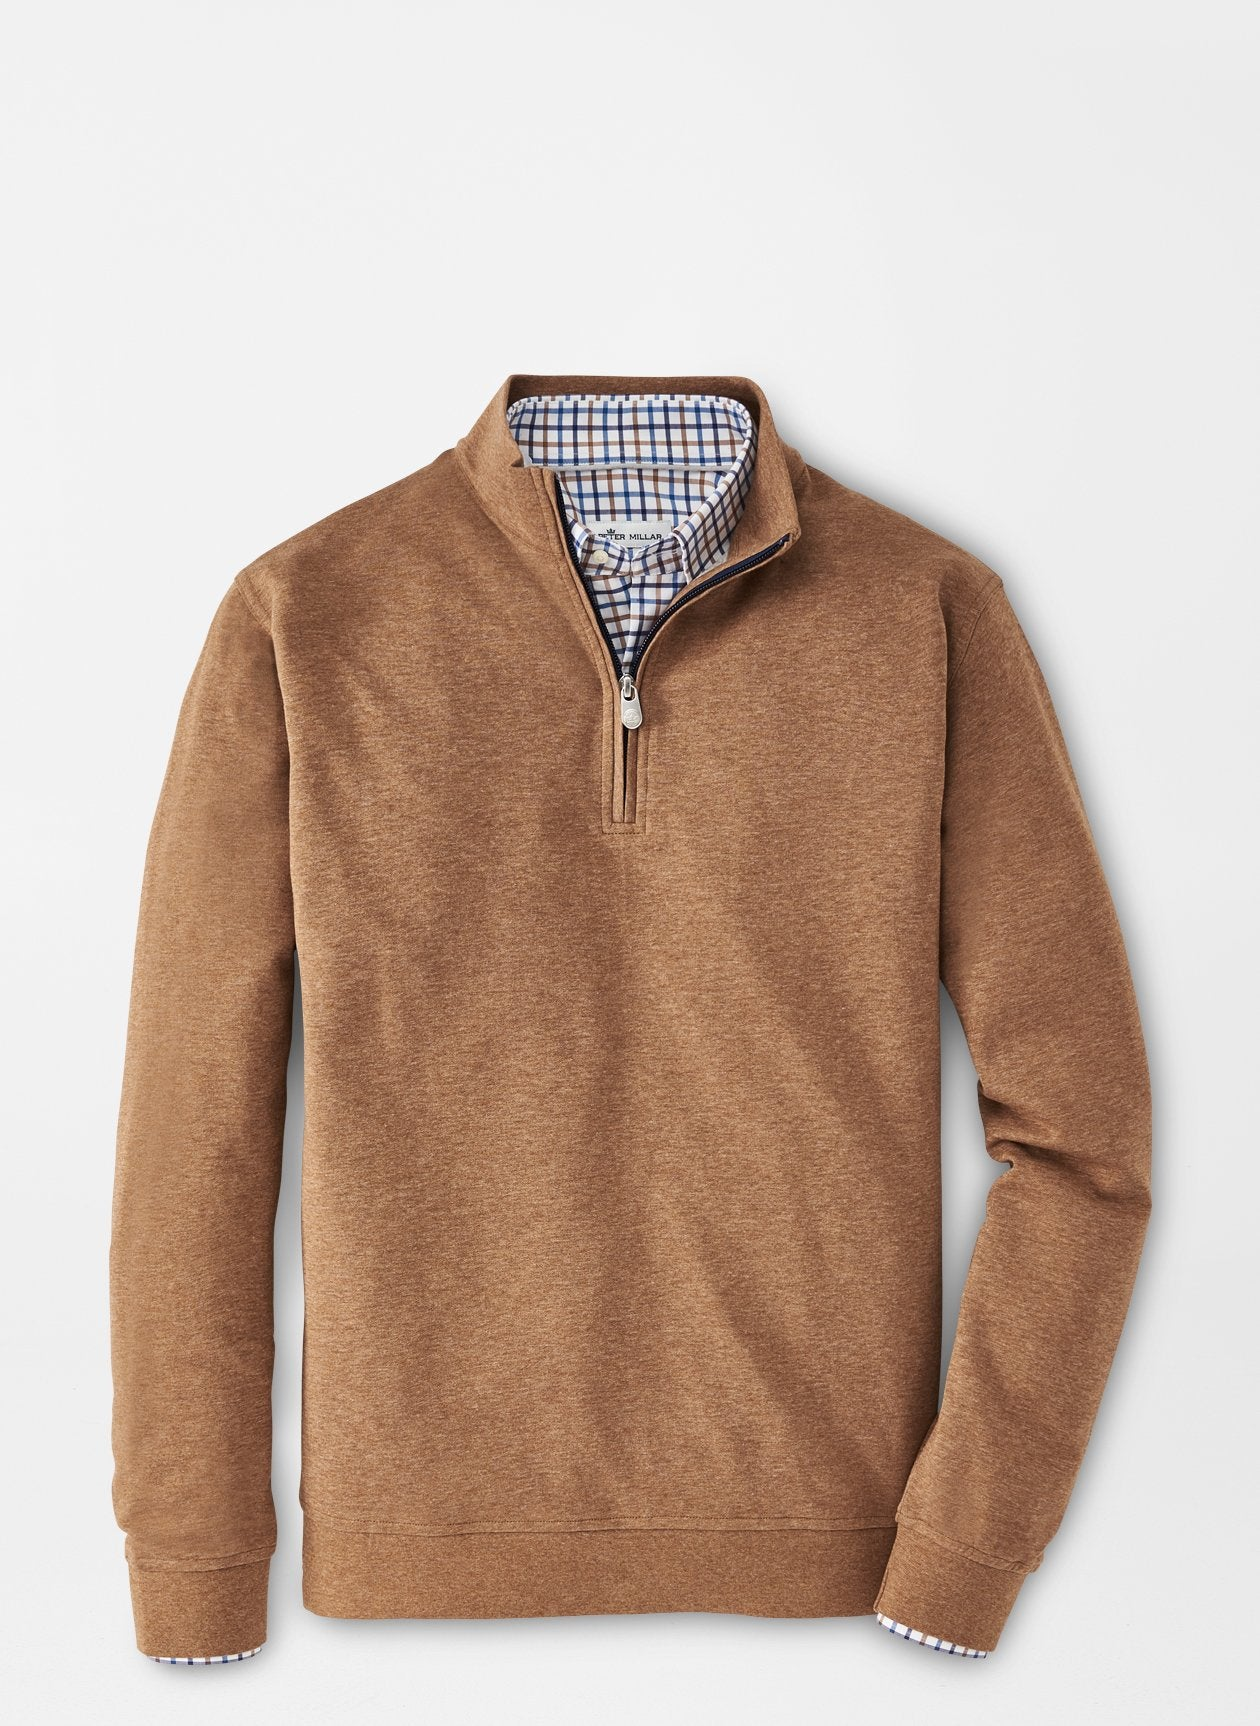 PETER MILLAR Men's Pullover SCOTCH / M Peter Millar Crown Comfort Interlock Quarter-Zip || David's Clothing MF20K40S